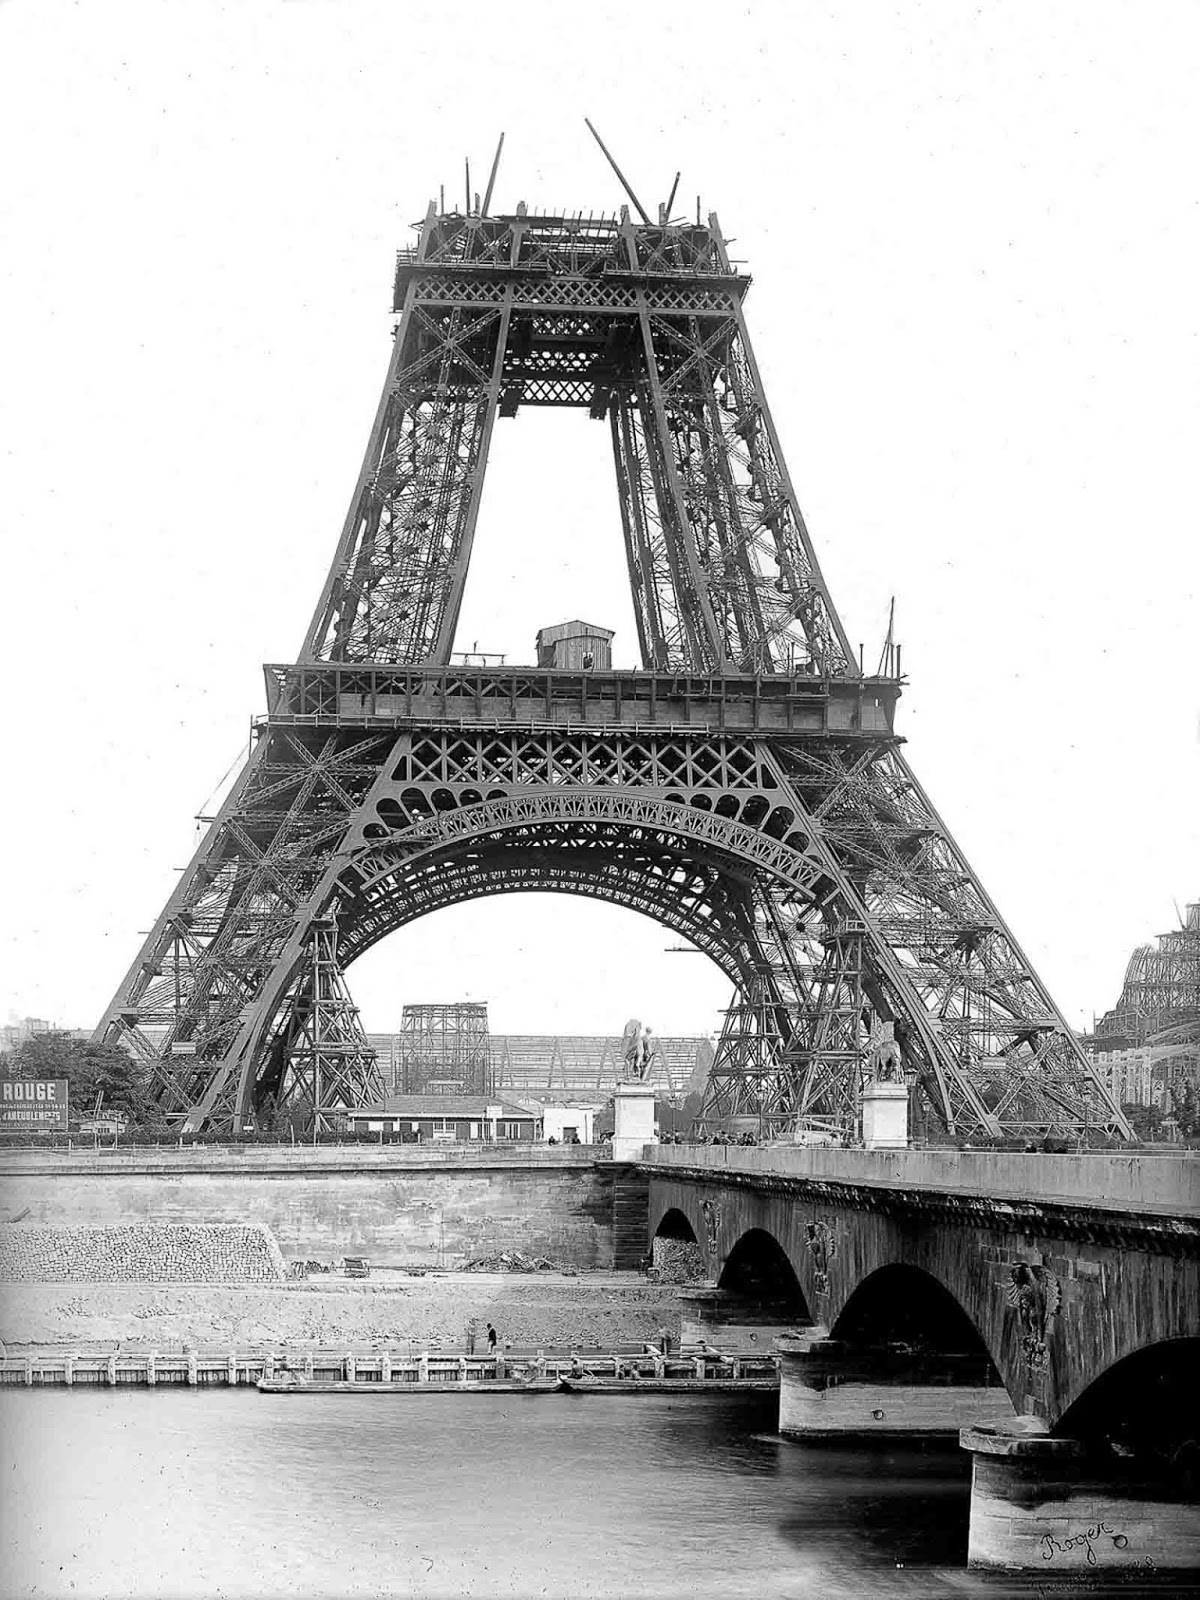 The tower on July 1888.